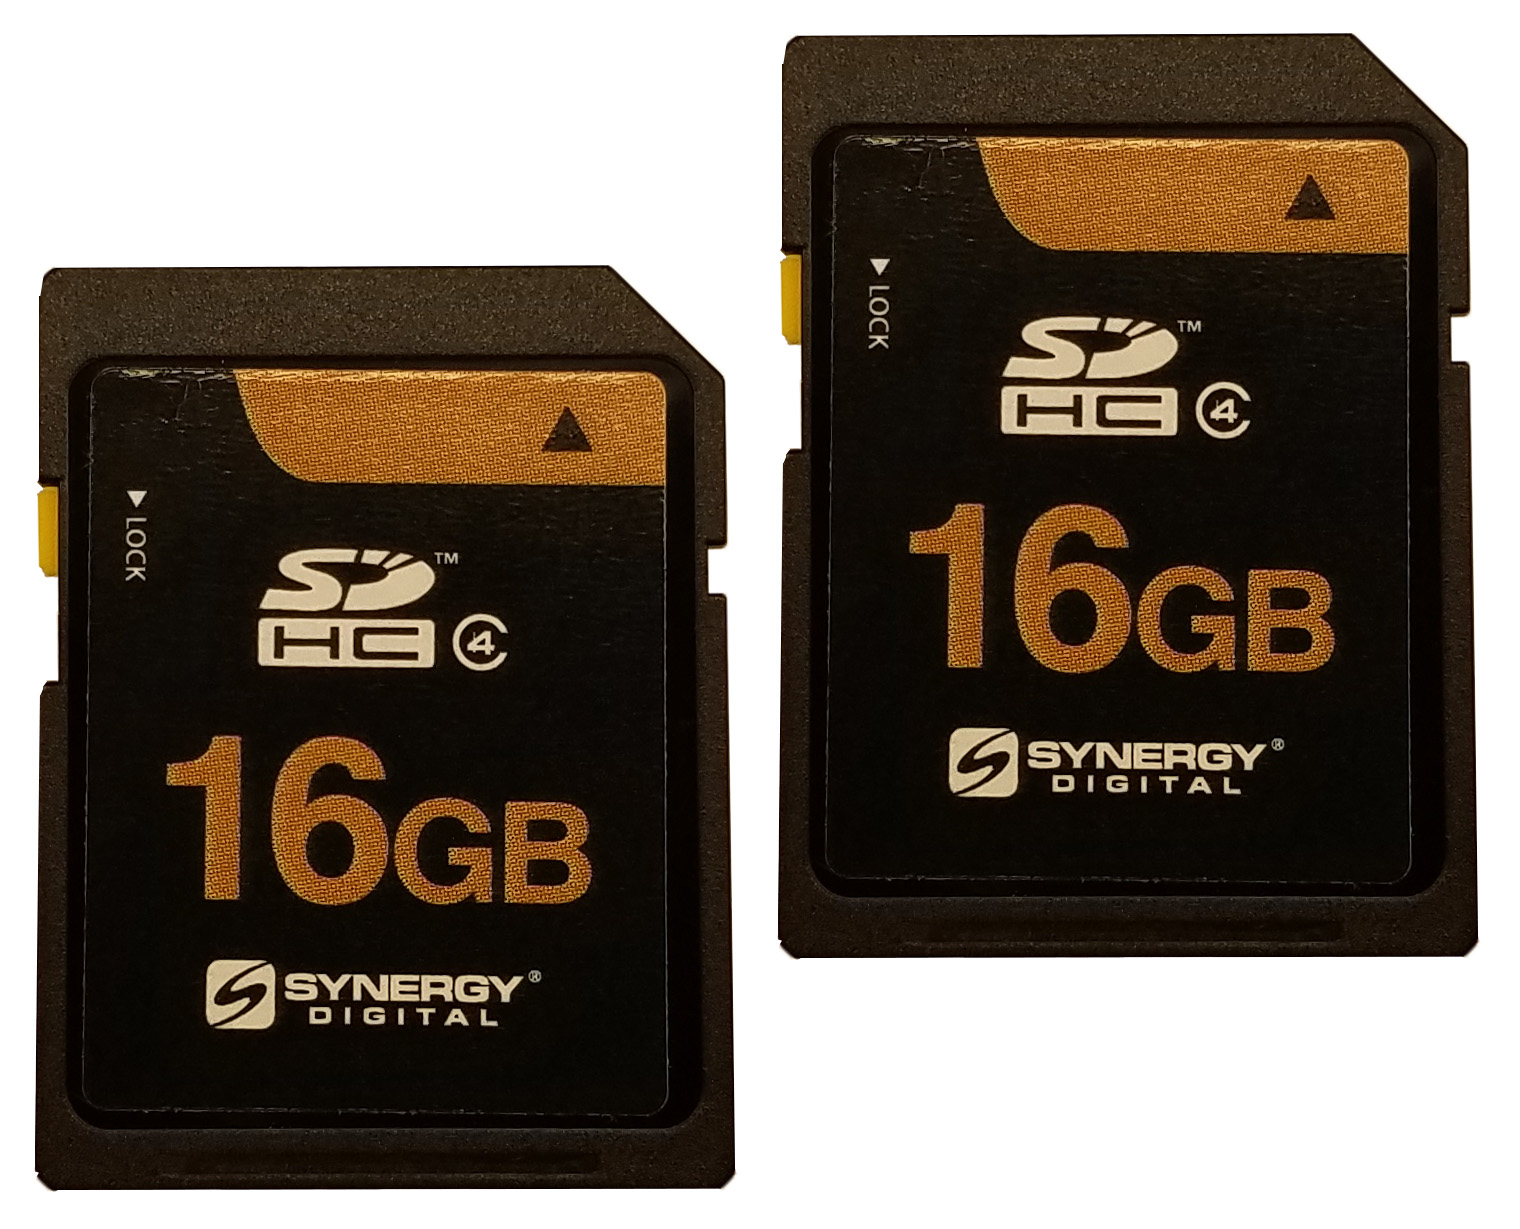 SDHC Memory Cards 2 Pack Canon HG20 Camcorder Memory Card 2 x 16GB Secure Digital High Capacity